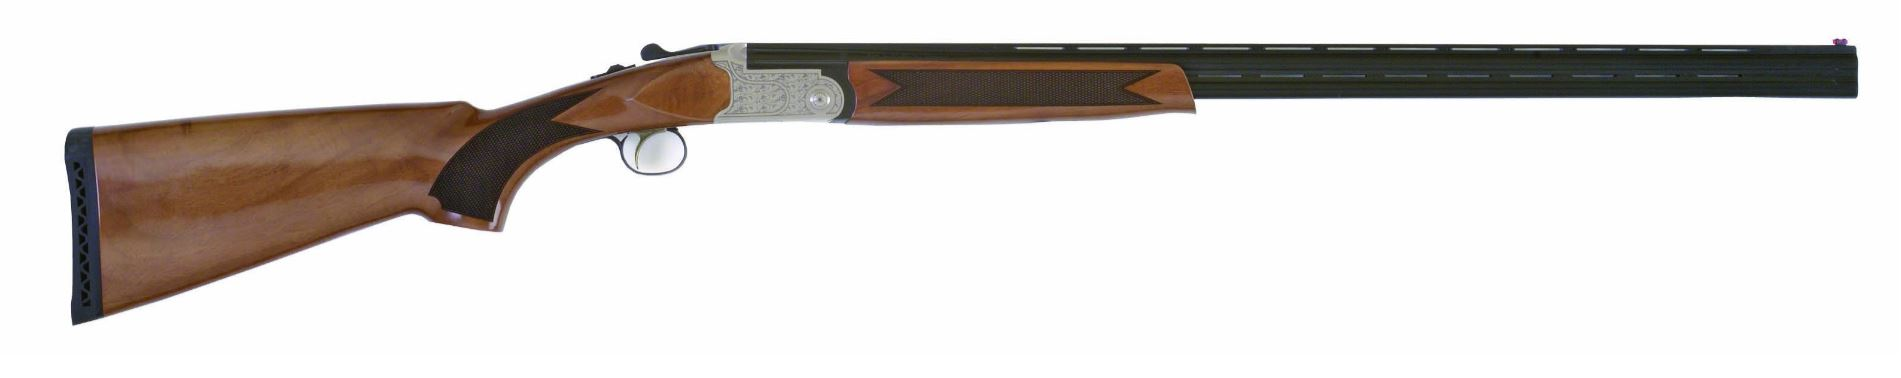 TriStar Sporting Arms Setter S/T 410 Bore